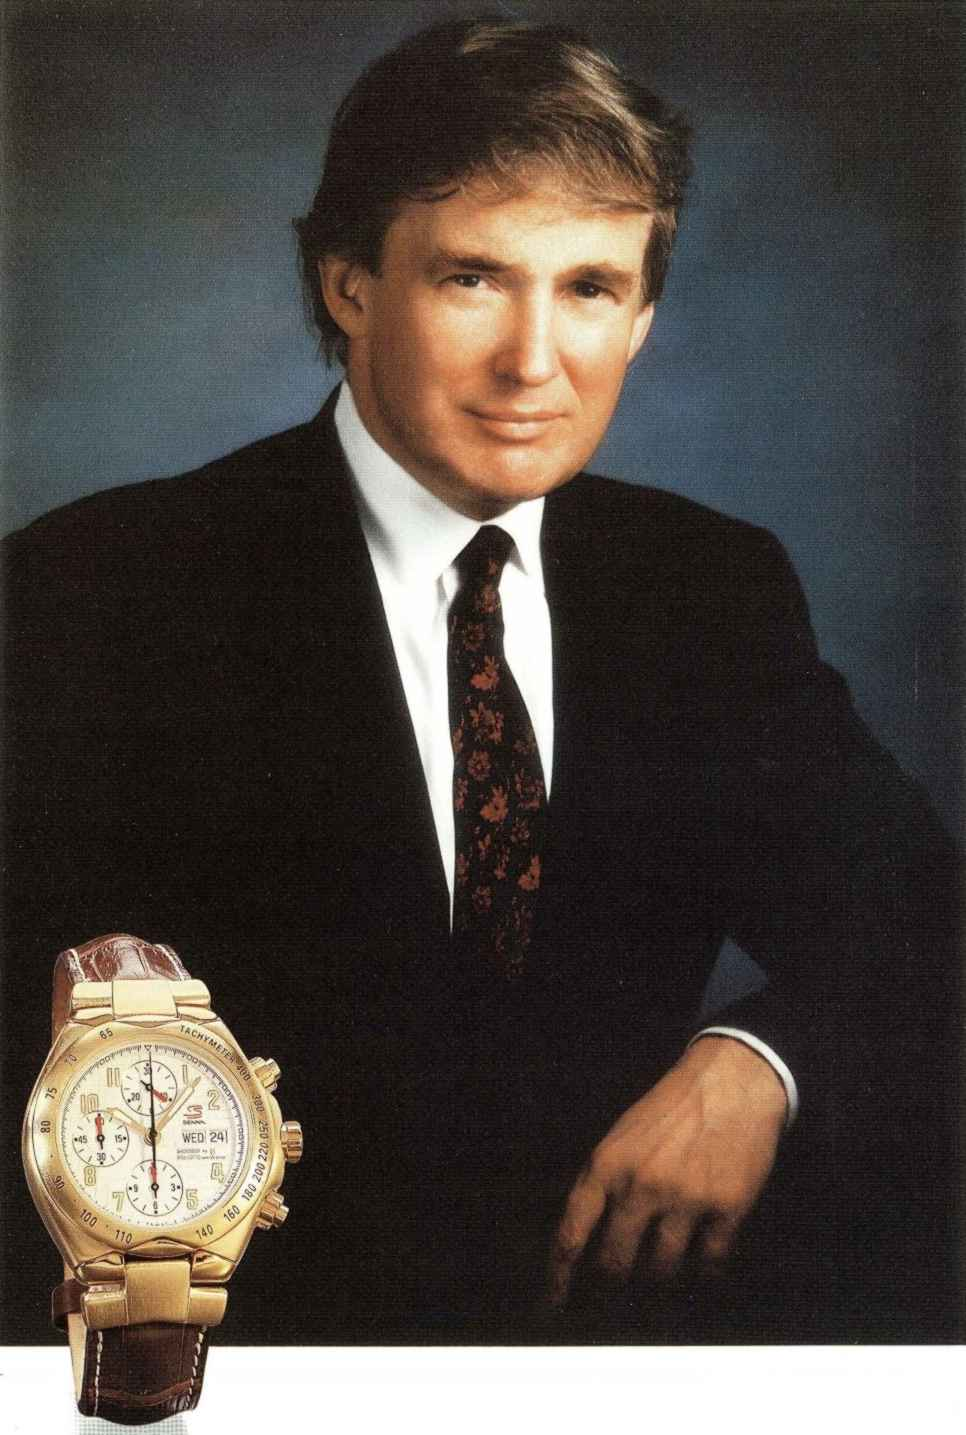 ... Lackluster Watch Collection of Donald Trump — Timepiece Chronicle